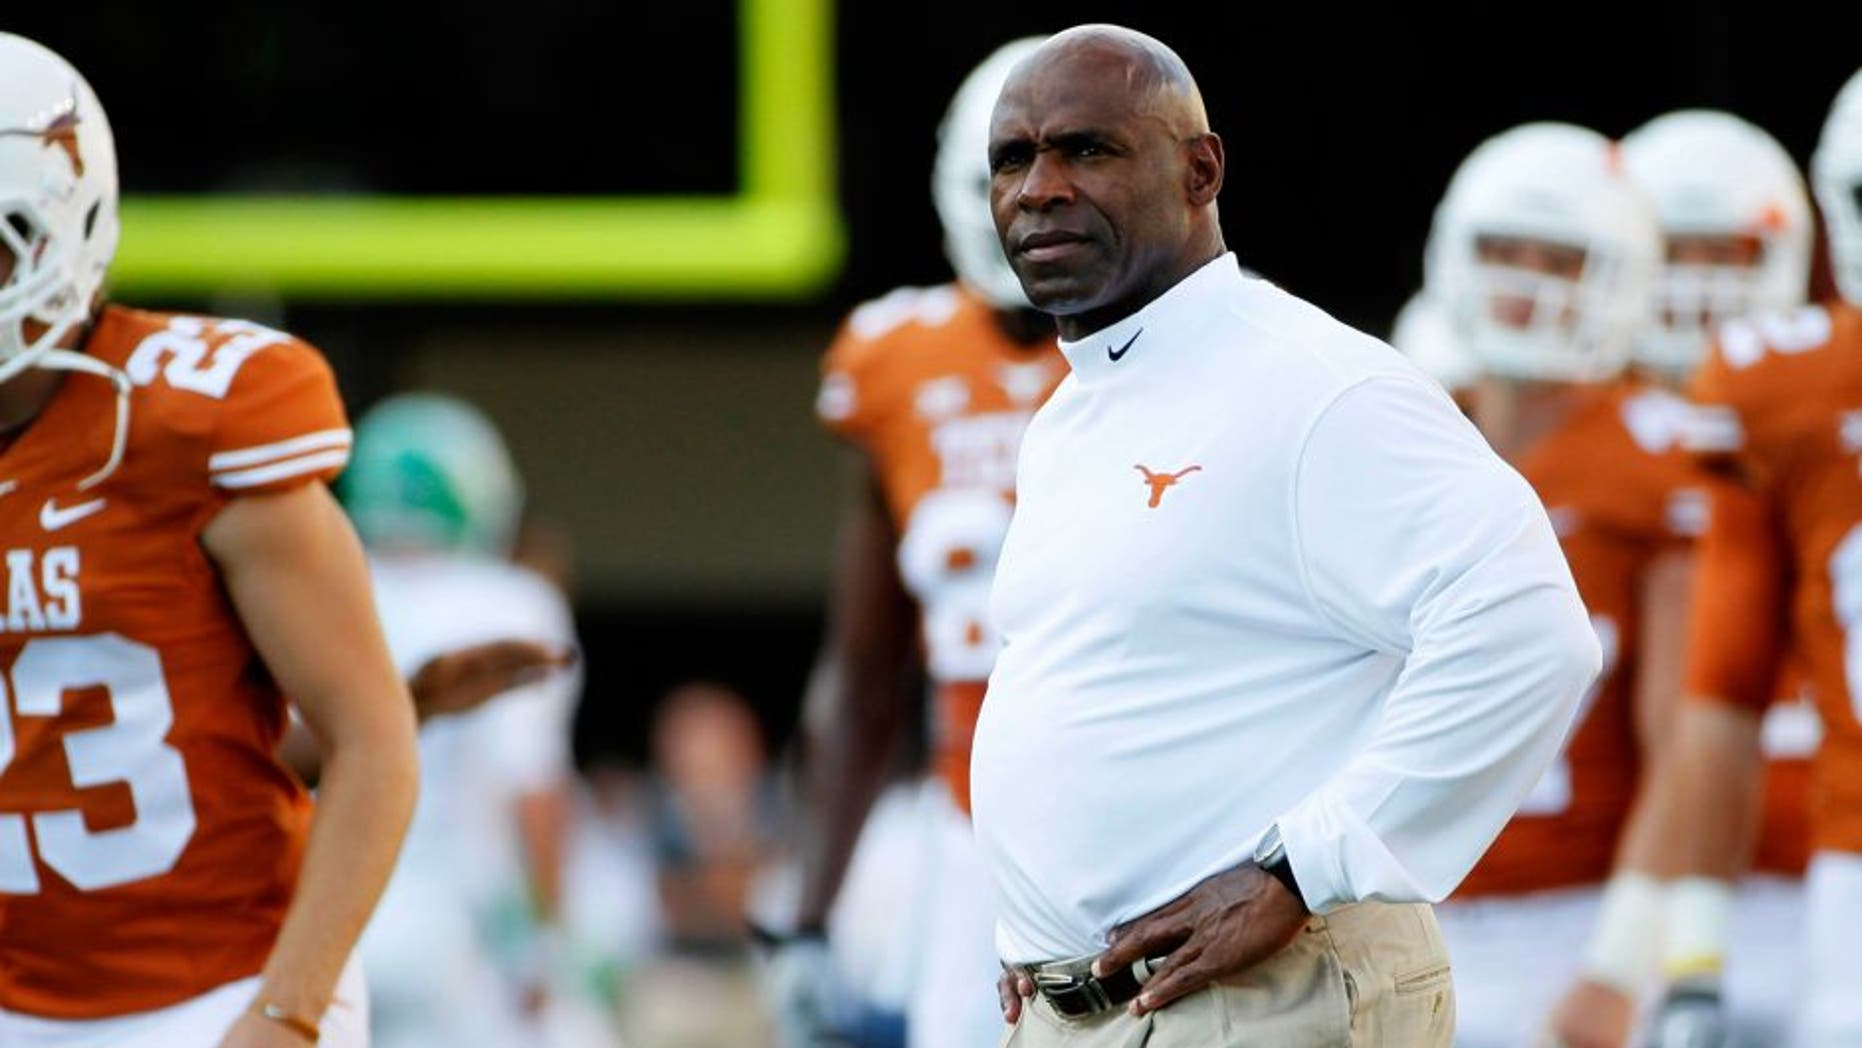 Aug 30, 2014; Austin, TX, USA; Texas Longhorns head coach Charlie Strong during warm ups before the game against the North Texas Mean Green at Darrell K Royal-Texas Memorial Stadium. Mandatory Credit: Soobum Im-USA TODAY Sports